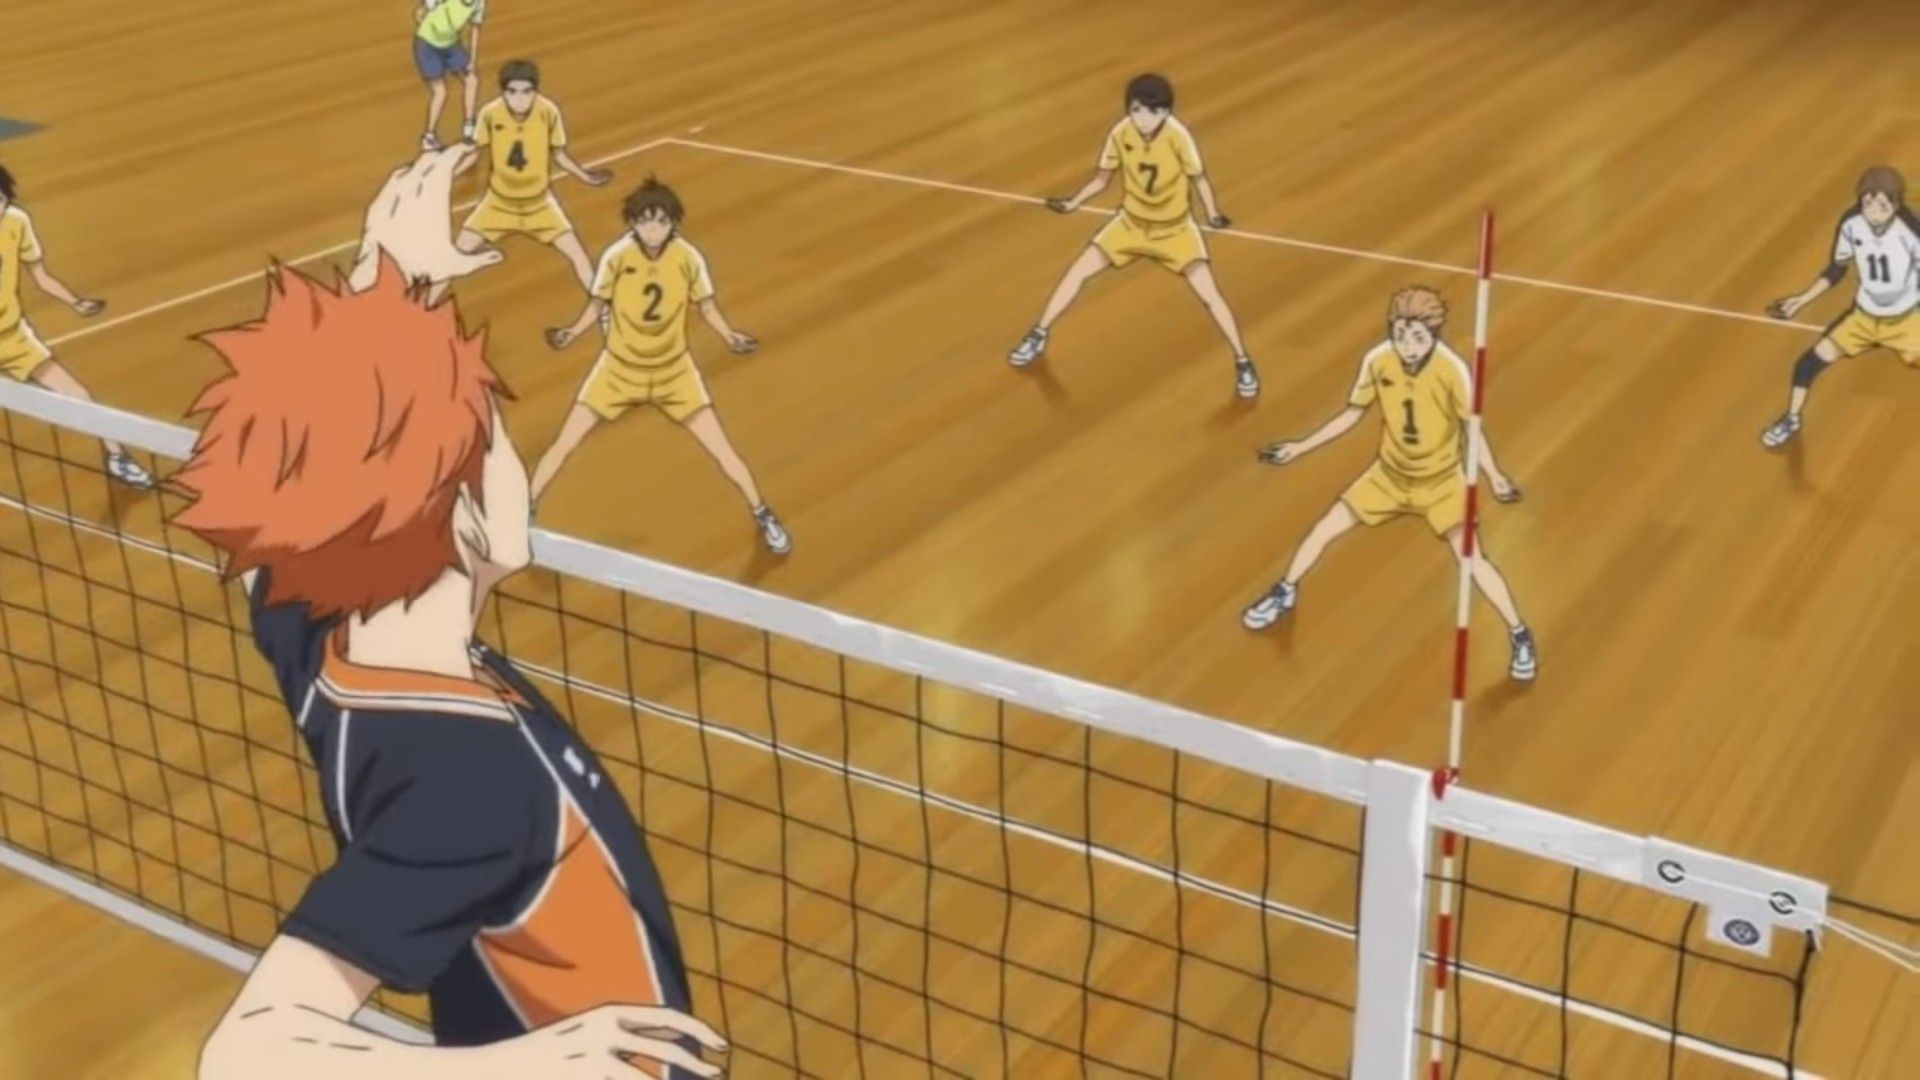 Pin By Kt On Haikyuu Haikyuu Sports Anime Volleyball